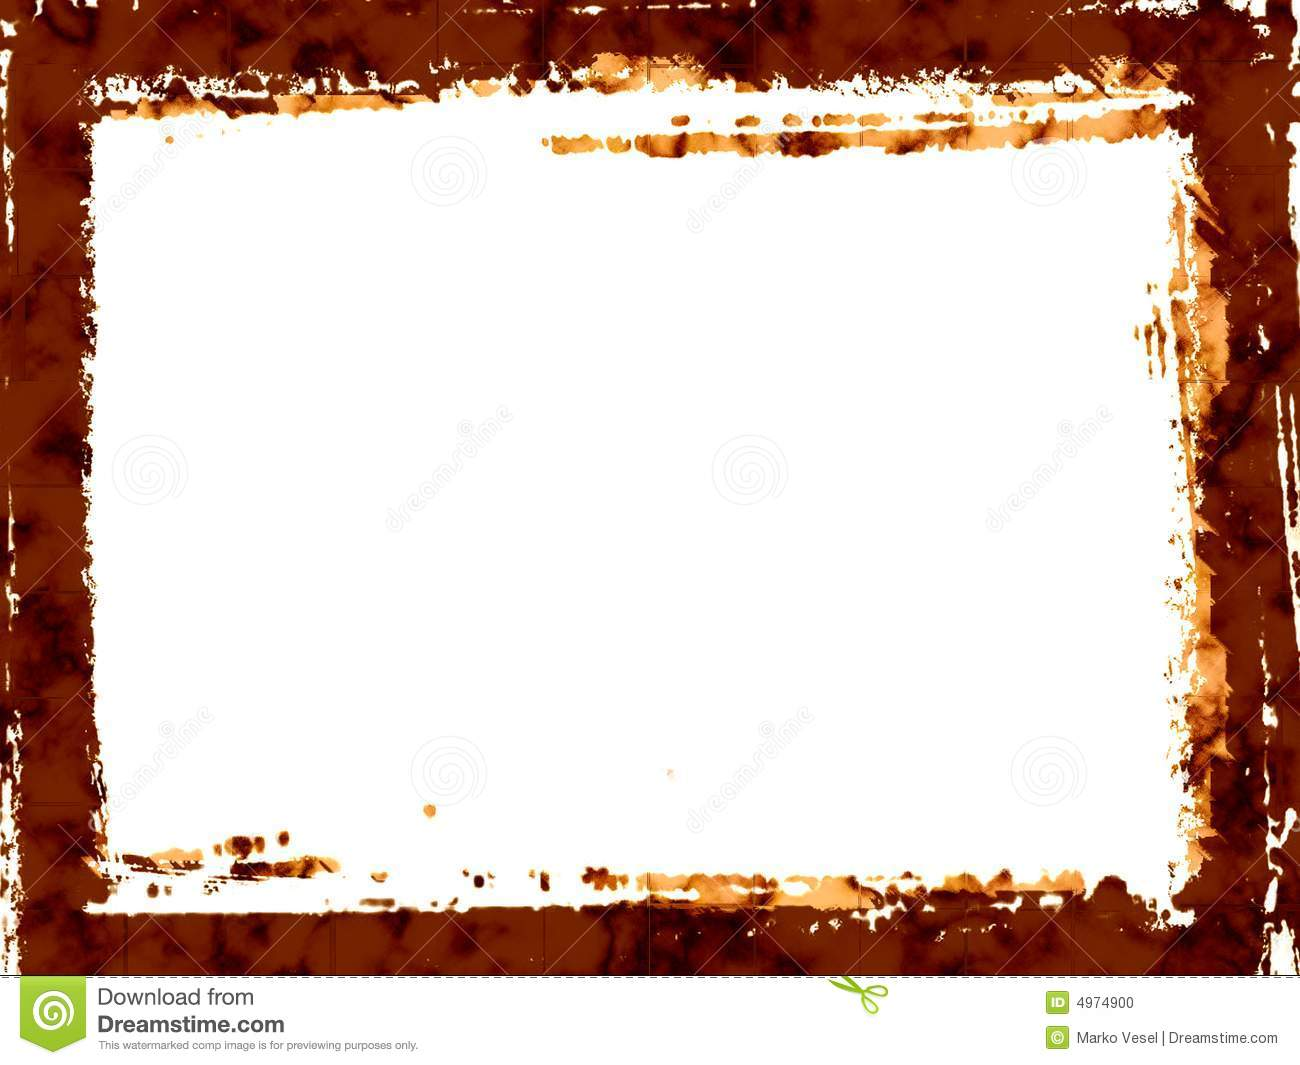 Brown Grunge Border Stock Photo - Image: 4974900